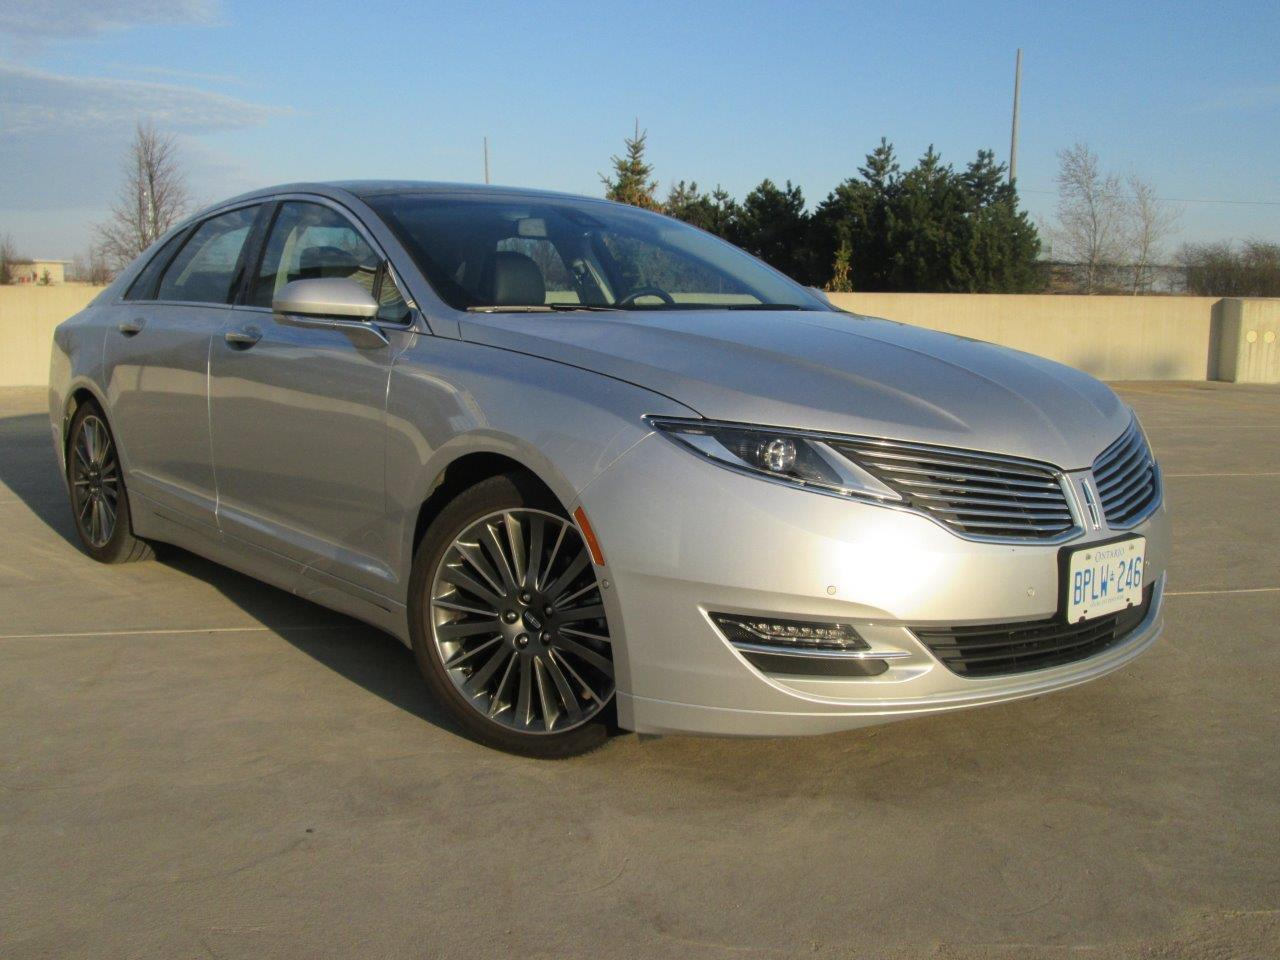 new 2014 lincoln mkz prices invoice msrp motor trend html autos post. Black Bedroom Furniture Sets. Home Design Ideas